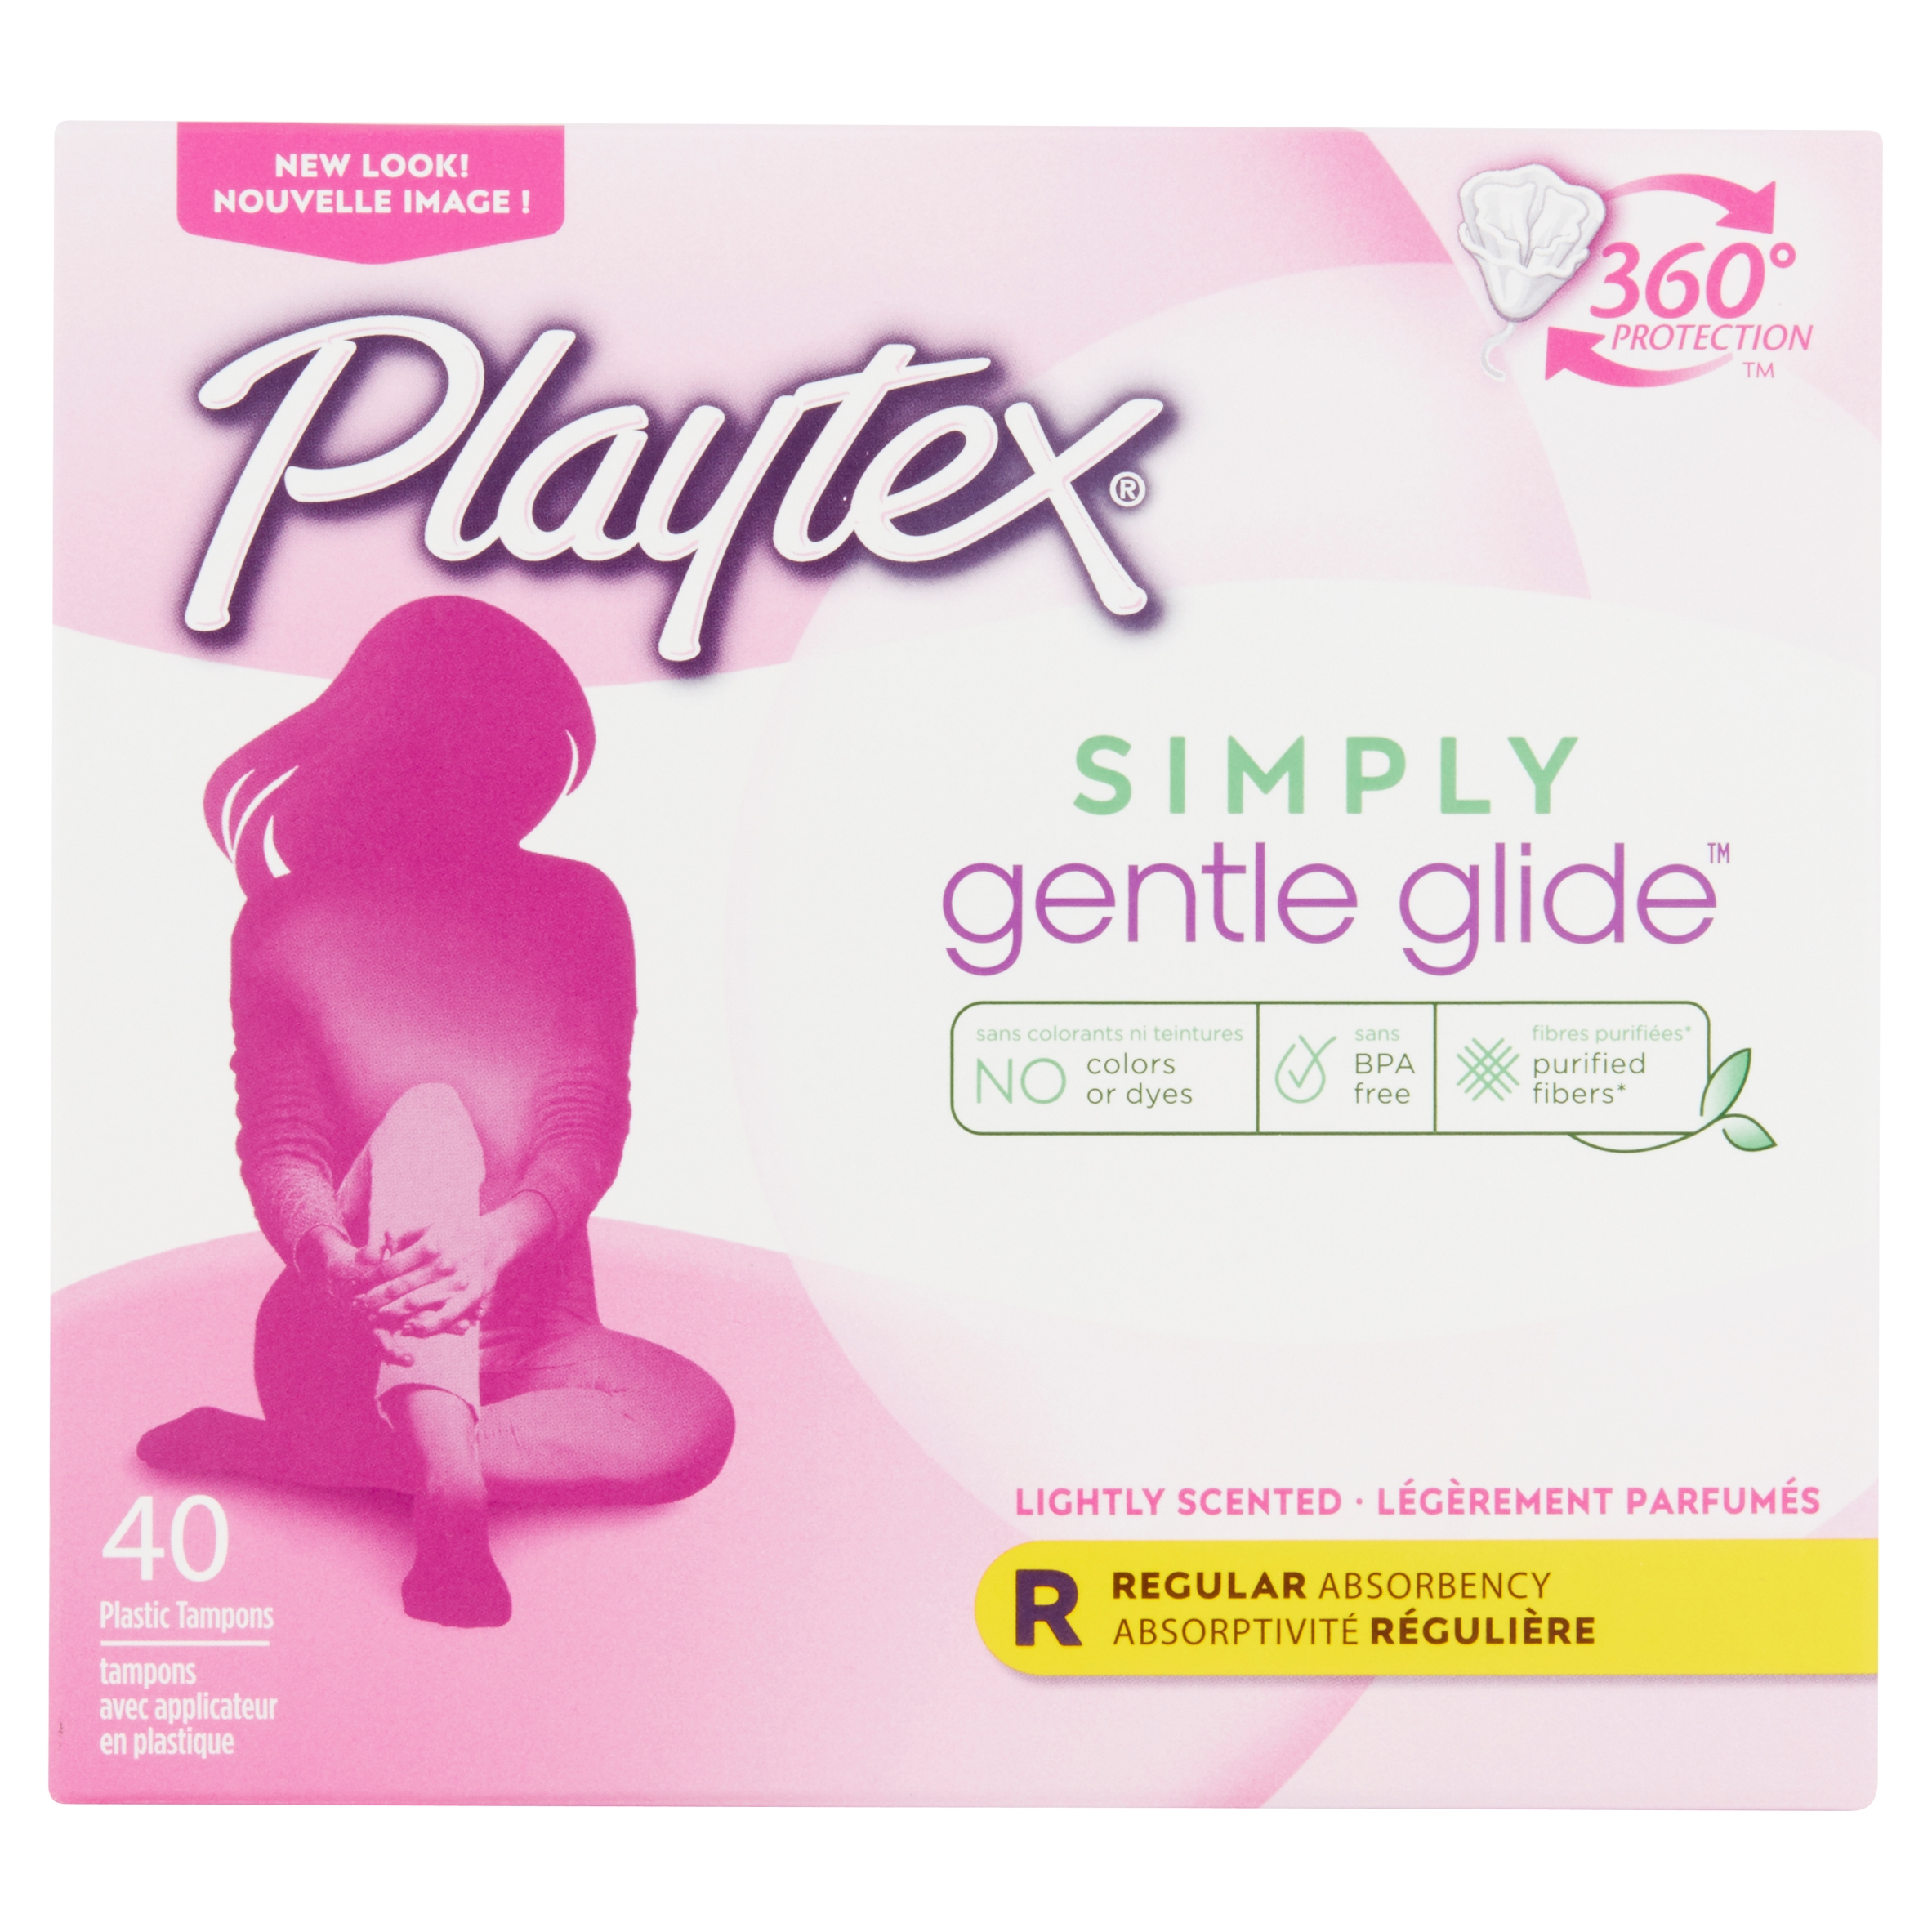 Playtex Simply Gentle Glide Scented Tampons, Regular Absorbency, 40 Ct